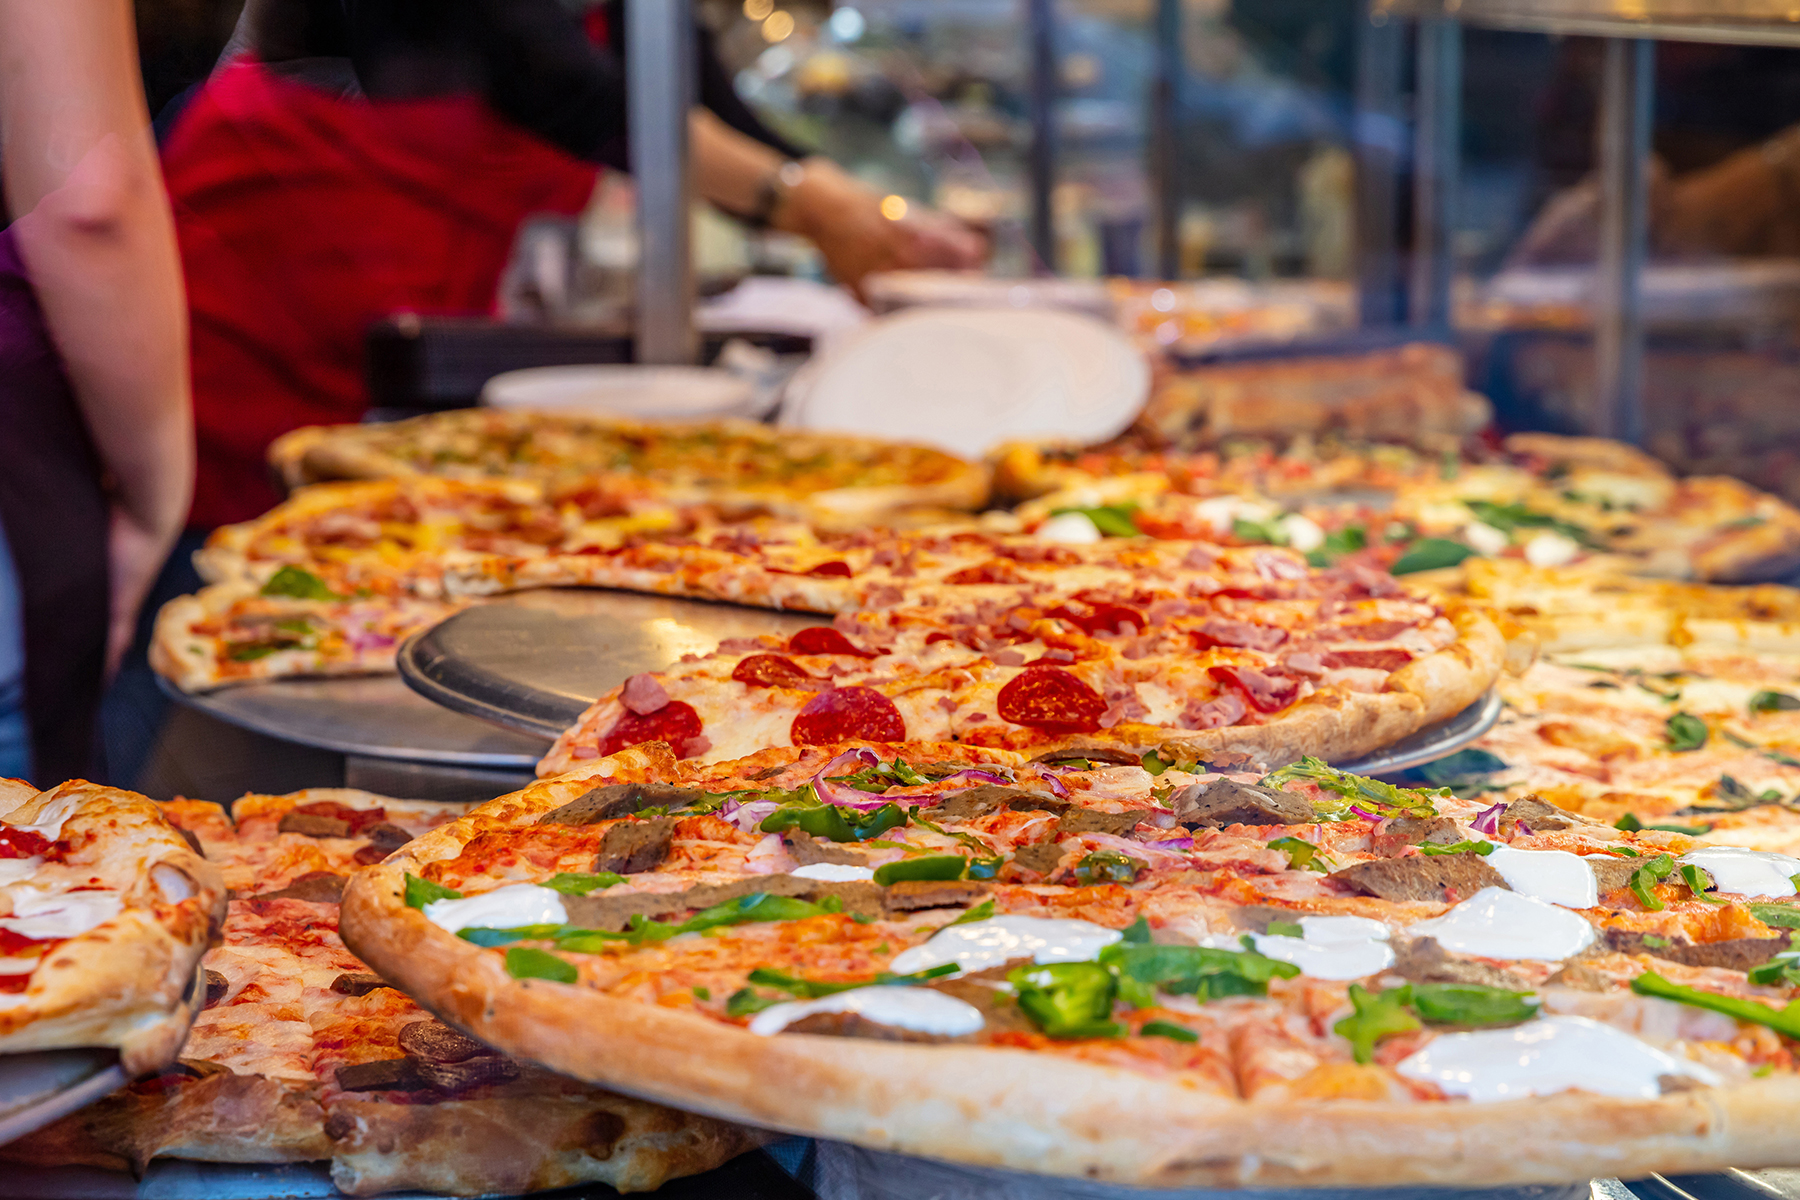 Pizza-being-served-on-platters-in-Pizza-shop